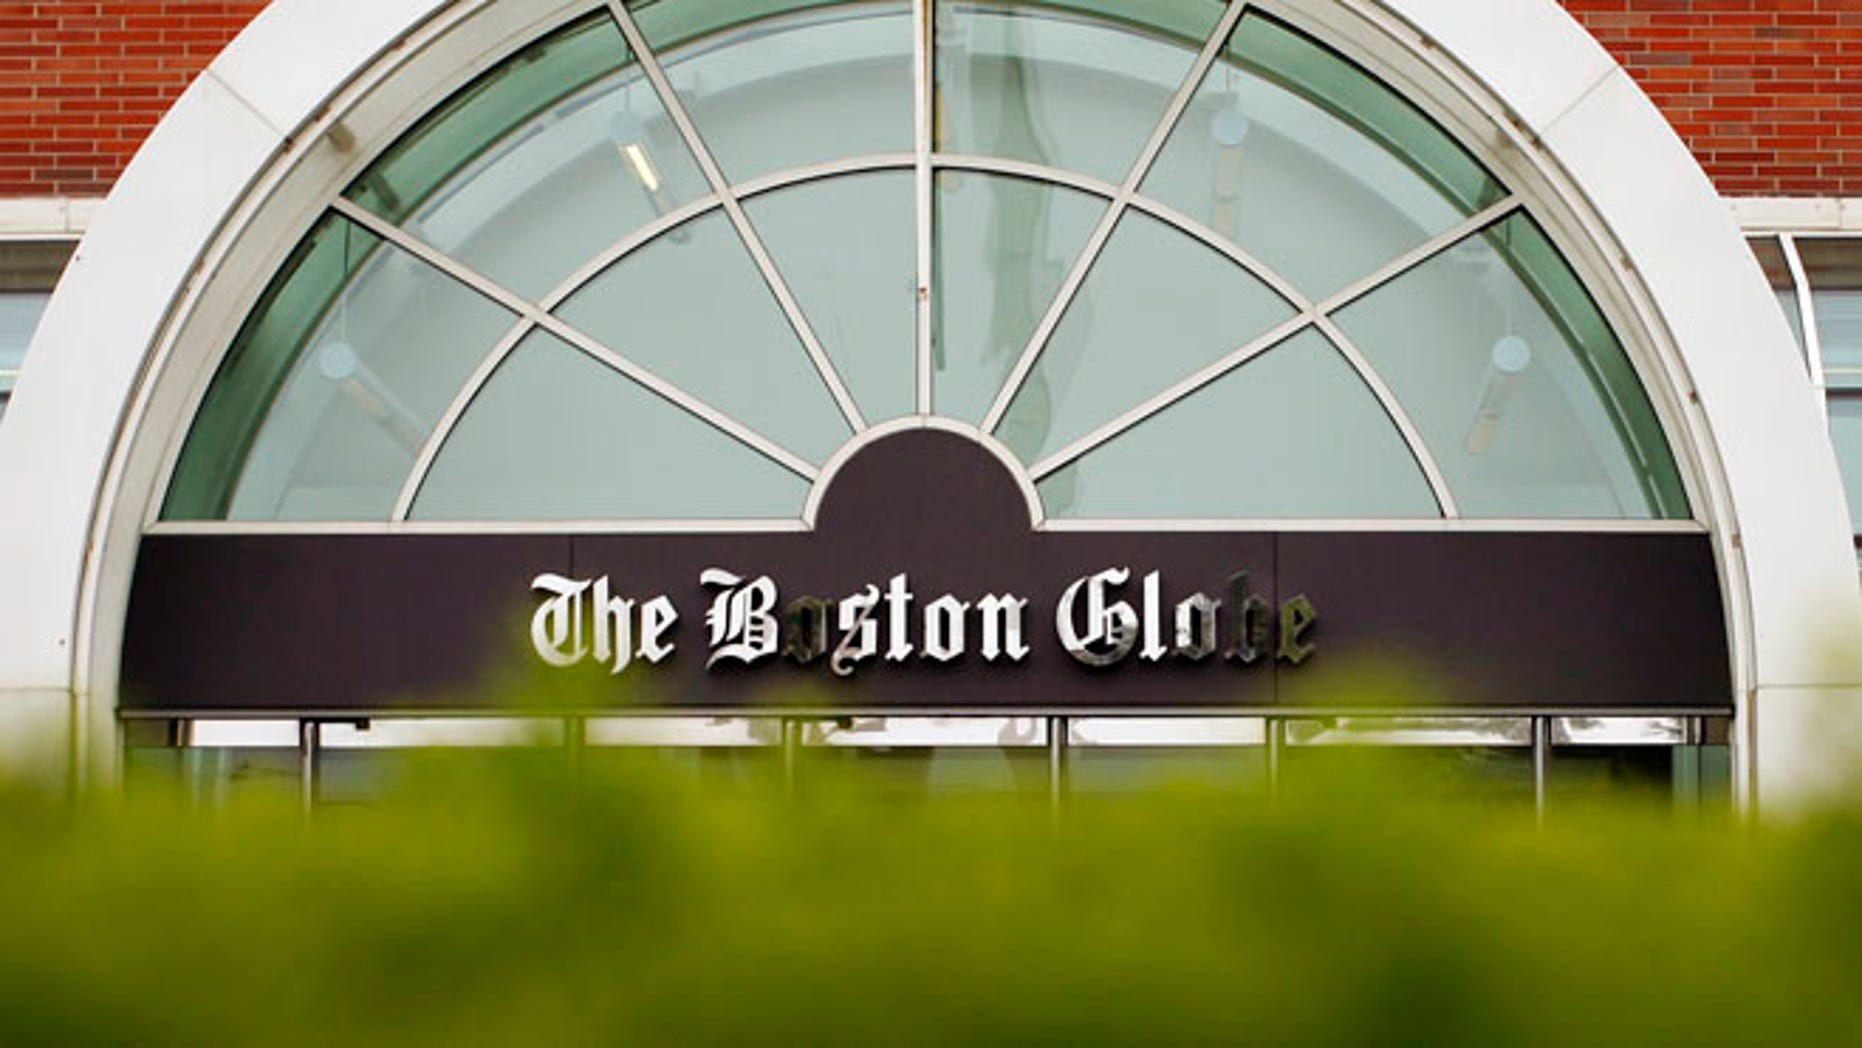 Times spokeswoman confirms the planned sale of the Boston Globe and other media properties to the Red Sox principle owner.